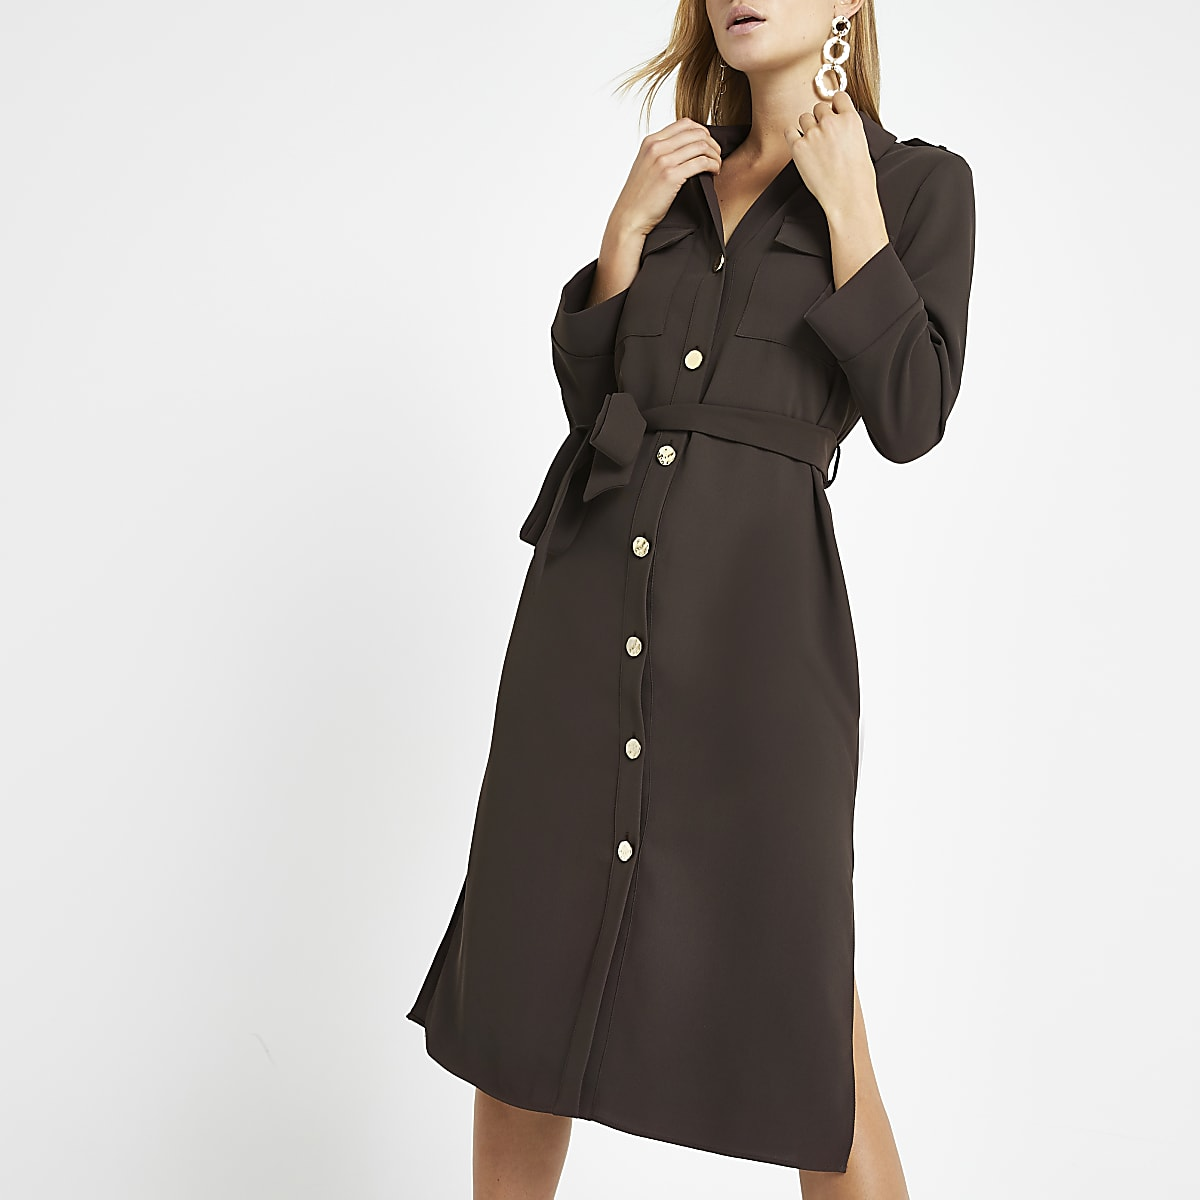 Dark brown belted shirt dress